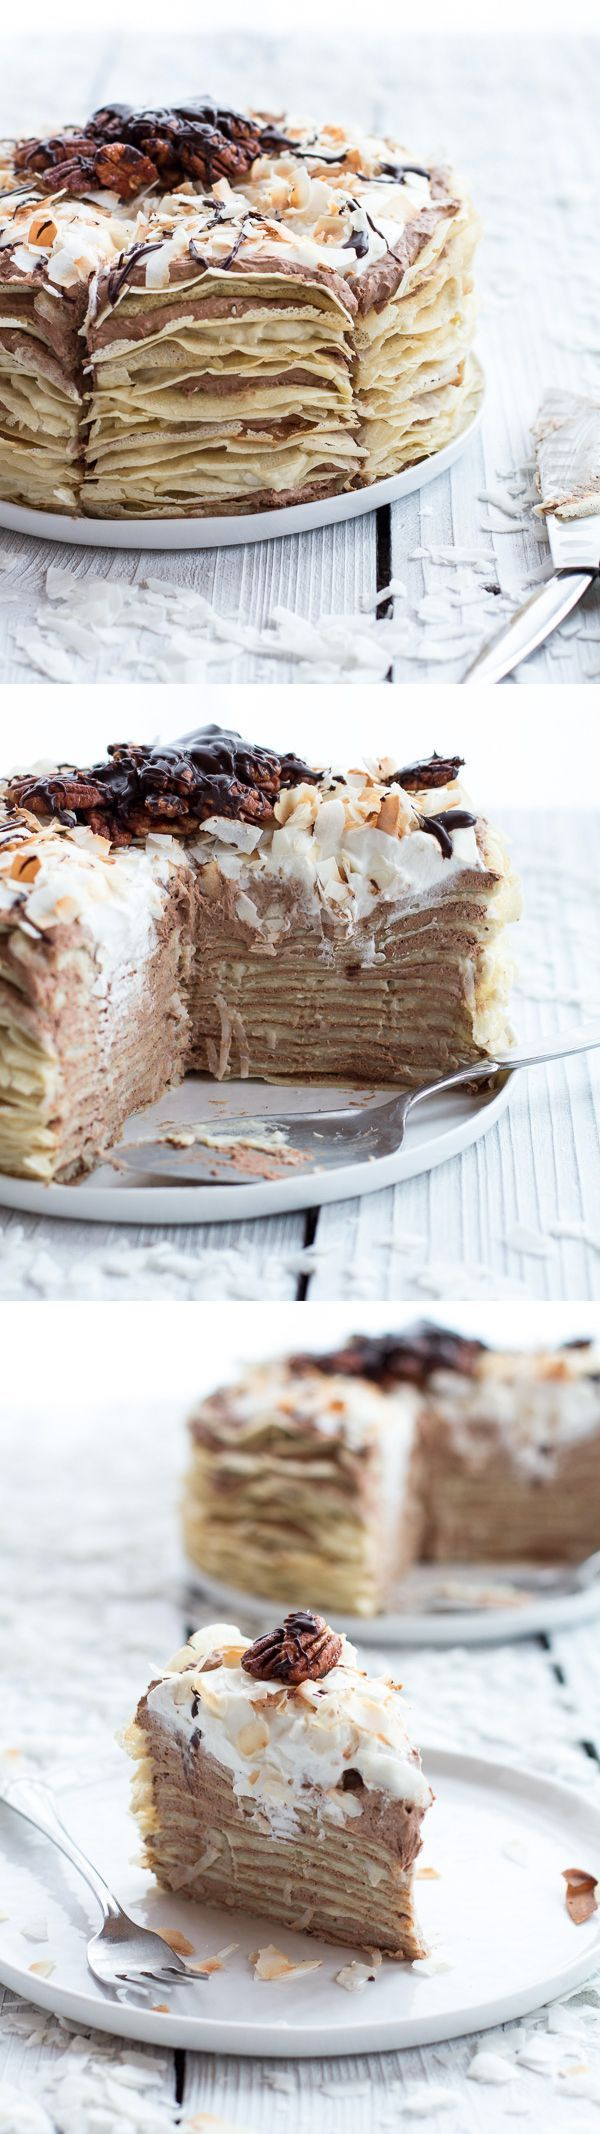 Chocolate Mousse Rum Crepe Cake Recipe Layers Pancakes